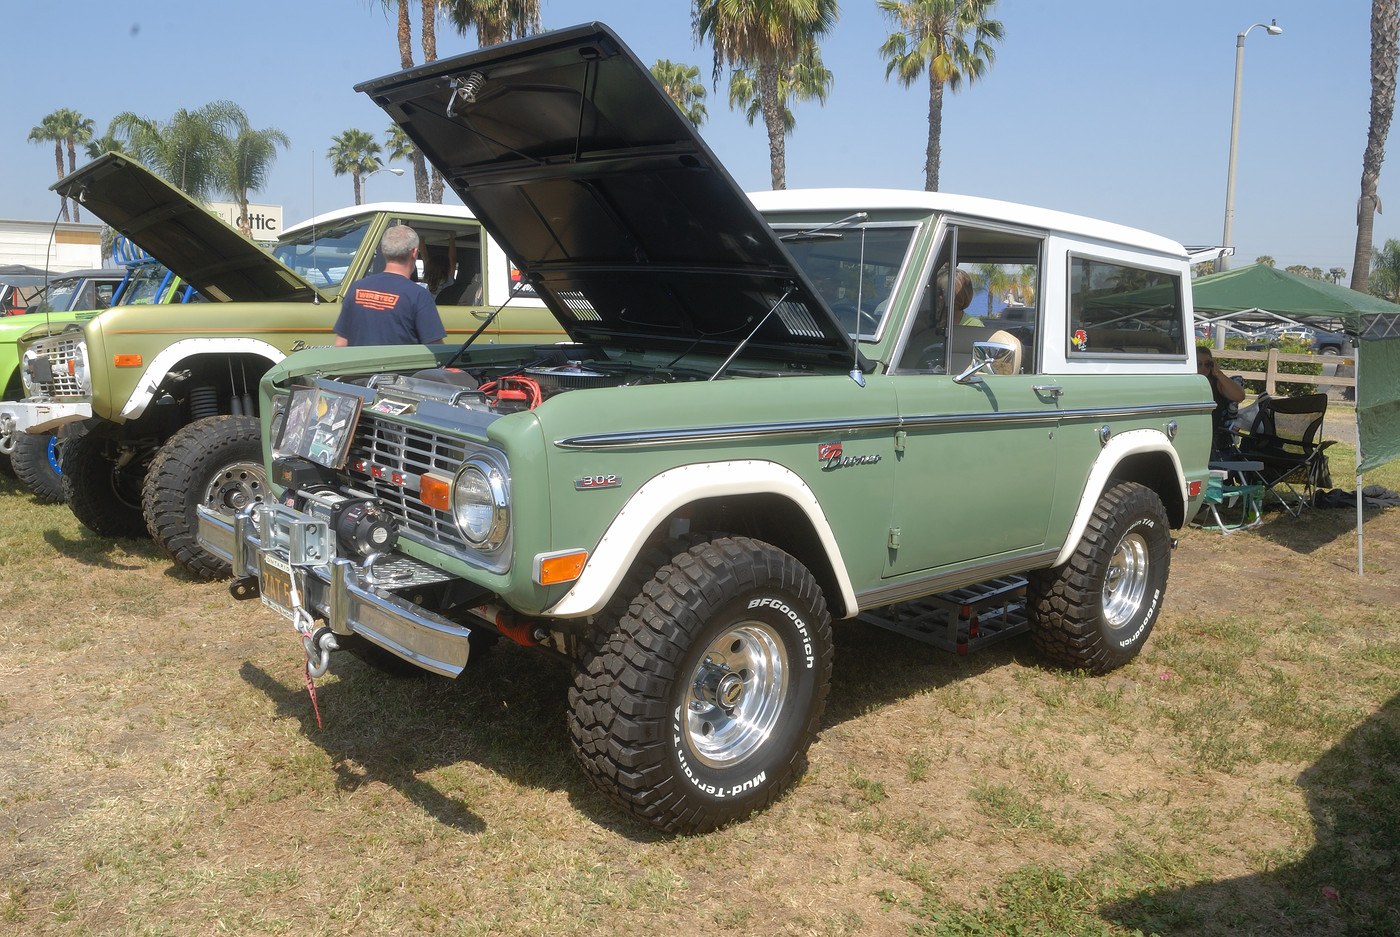 1969 Ford Bronco owned by Jim Hall DSC 4882